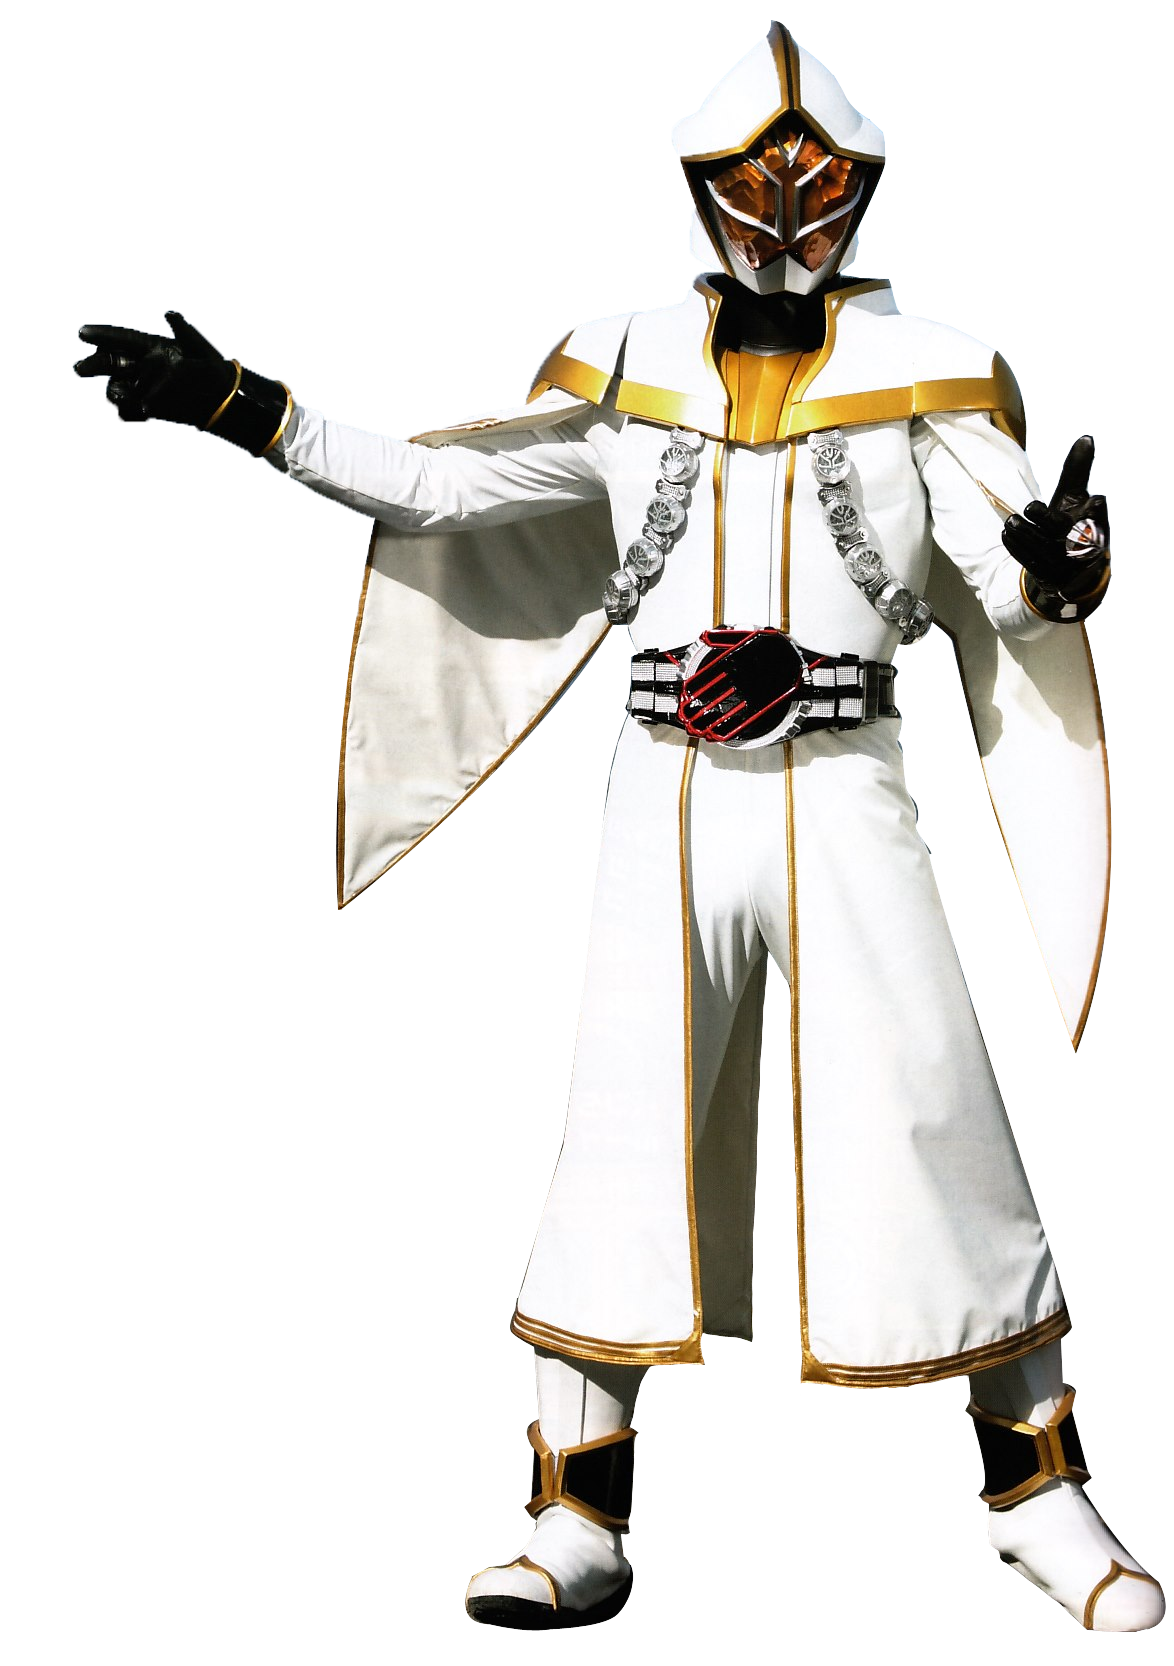 The White Wizard  sc 1 st  Kamen Rider Wiki - Fandom & The White Wizard | Kamen Rider Wiki | FANDOM powered by Wikia